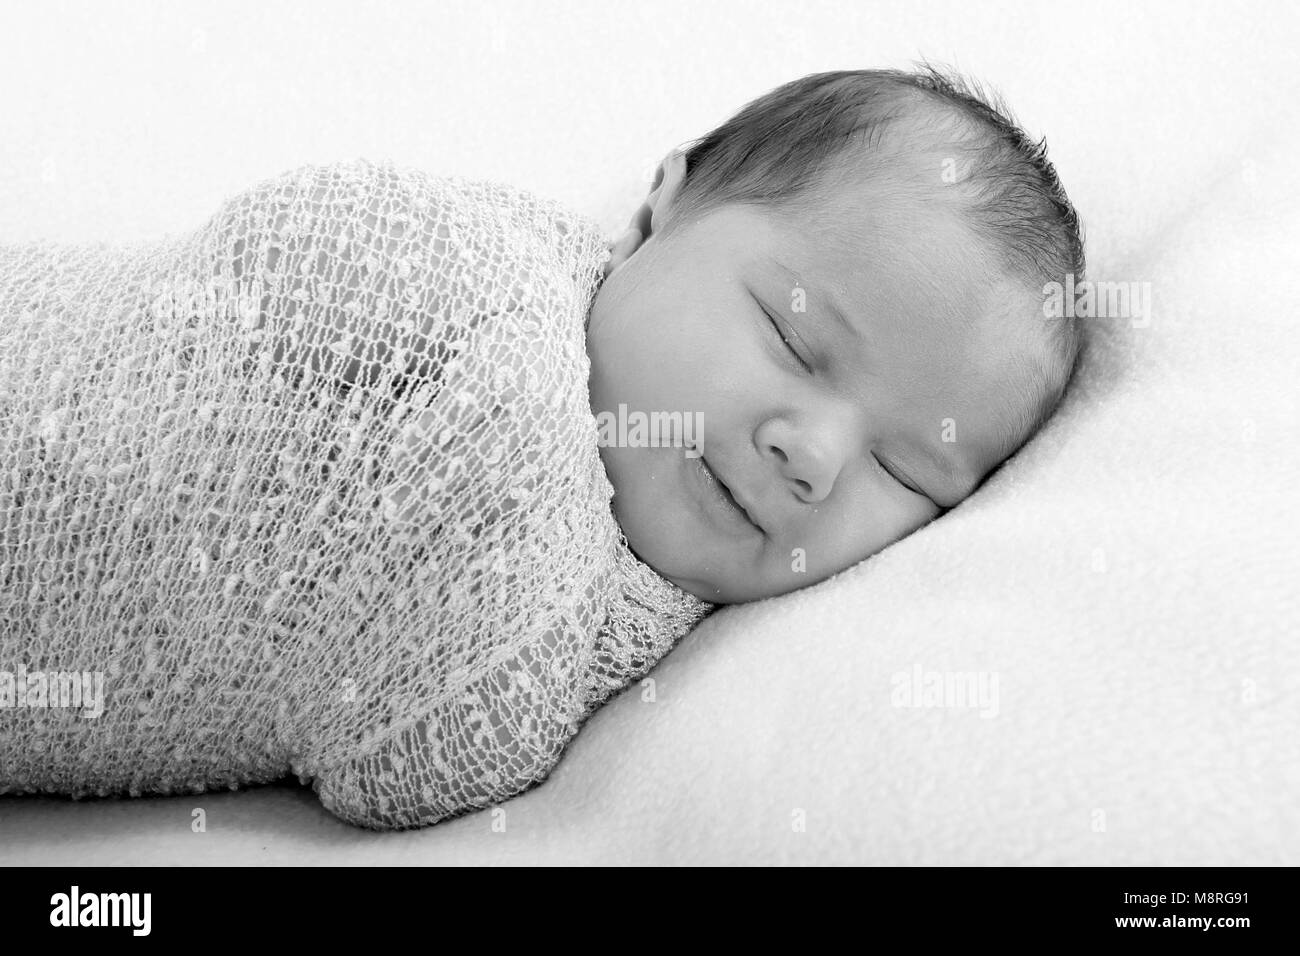 Cutie Newborn Baby Girl In Swaddling Wrap On Soft Blanket In Nursery